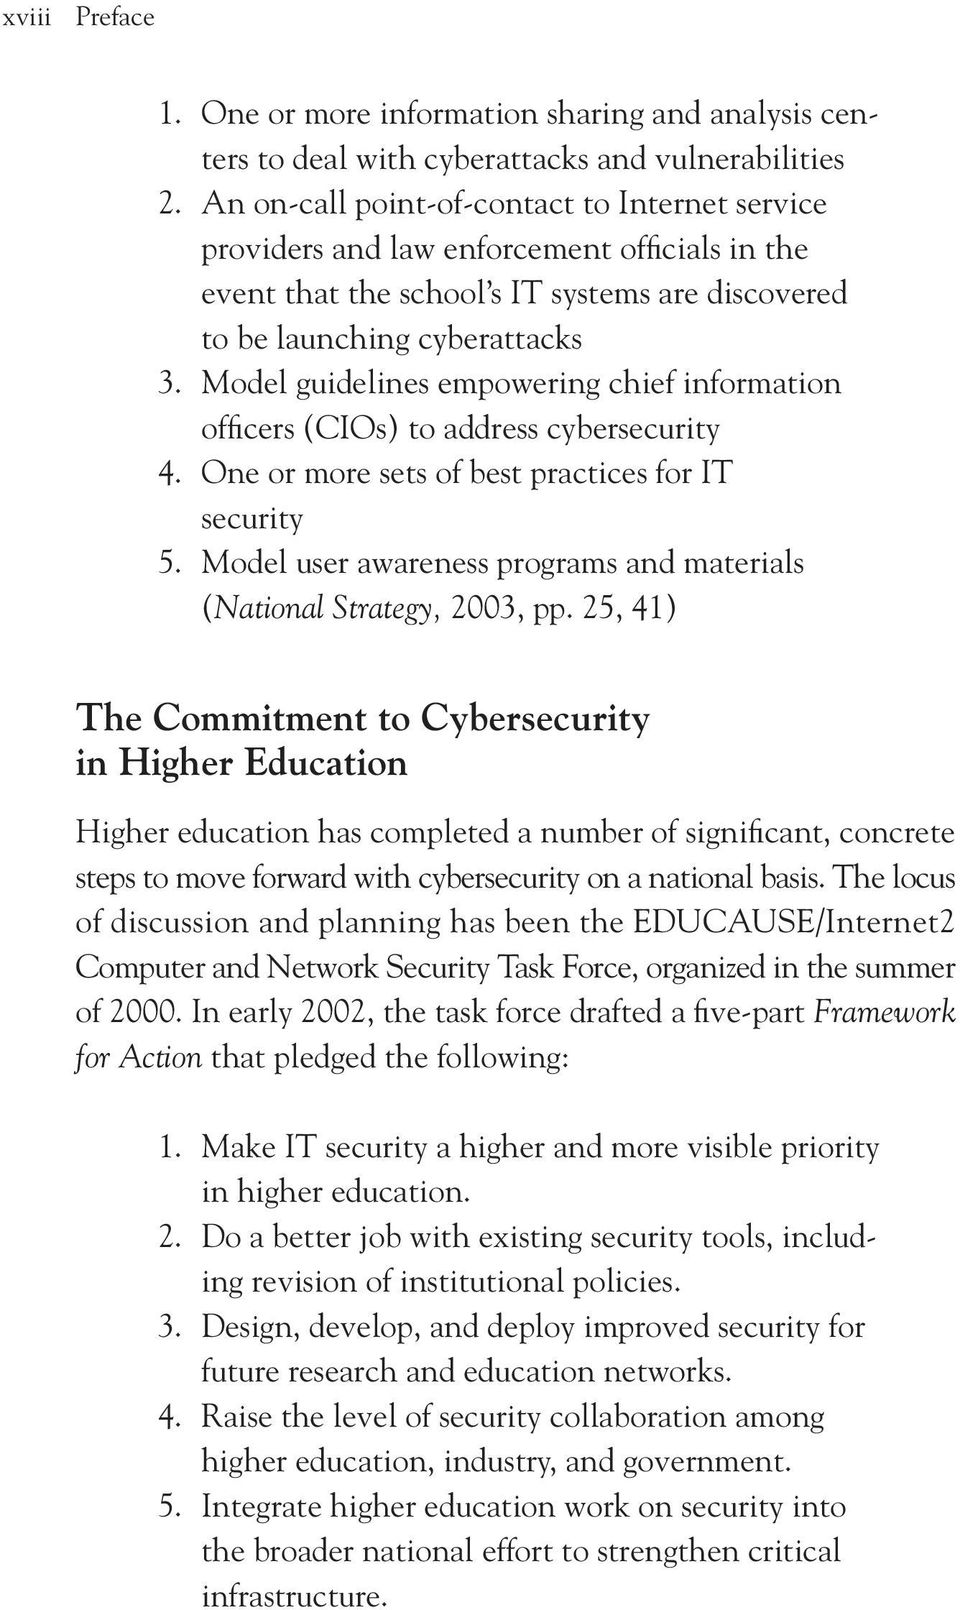 Model guidelines empowering chief information officers (CIOs) to address cybersecurity 4. One or more sets of best practices for IT security 5.